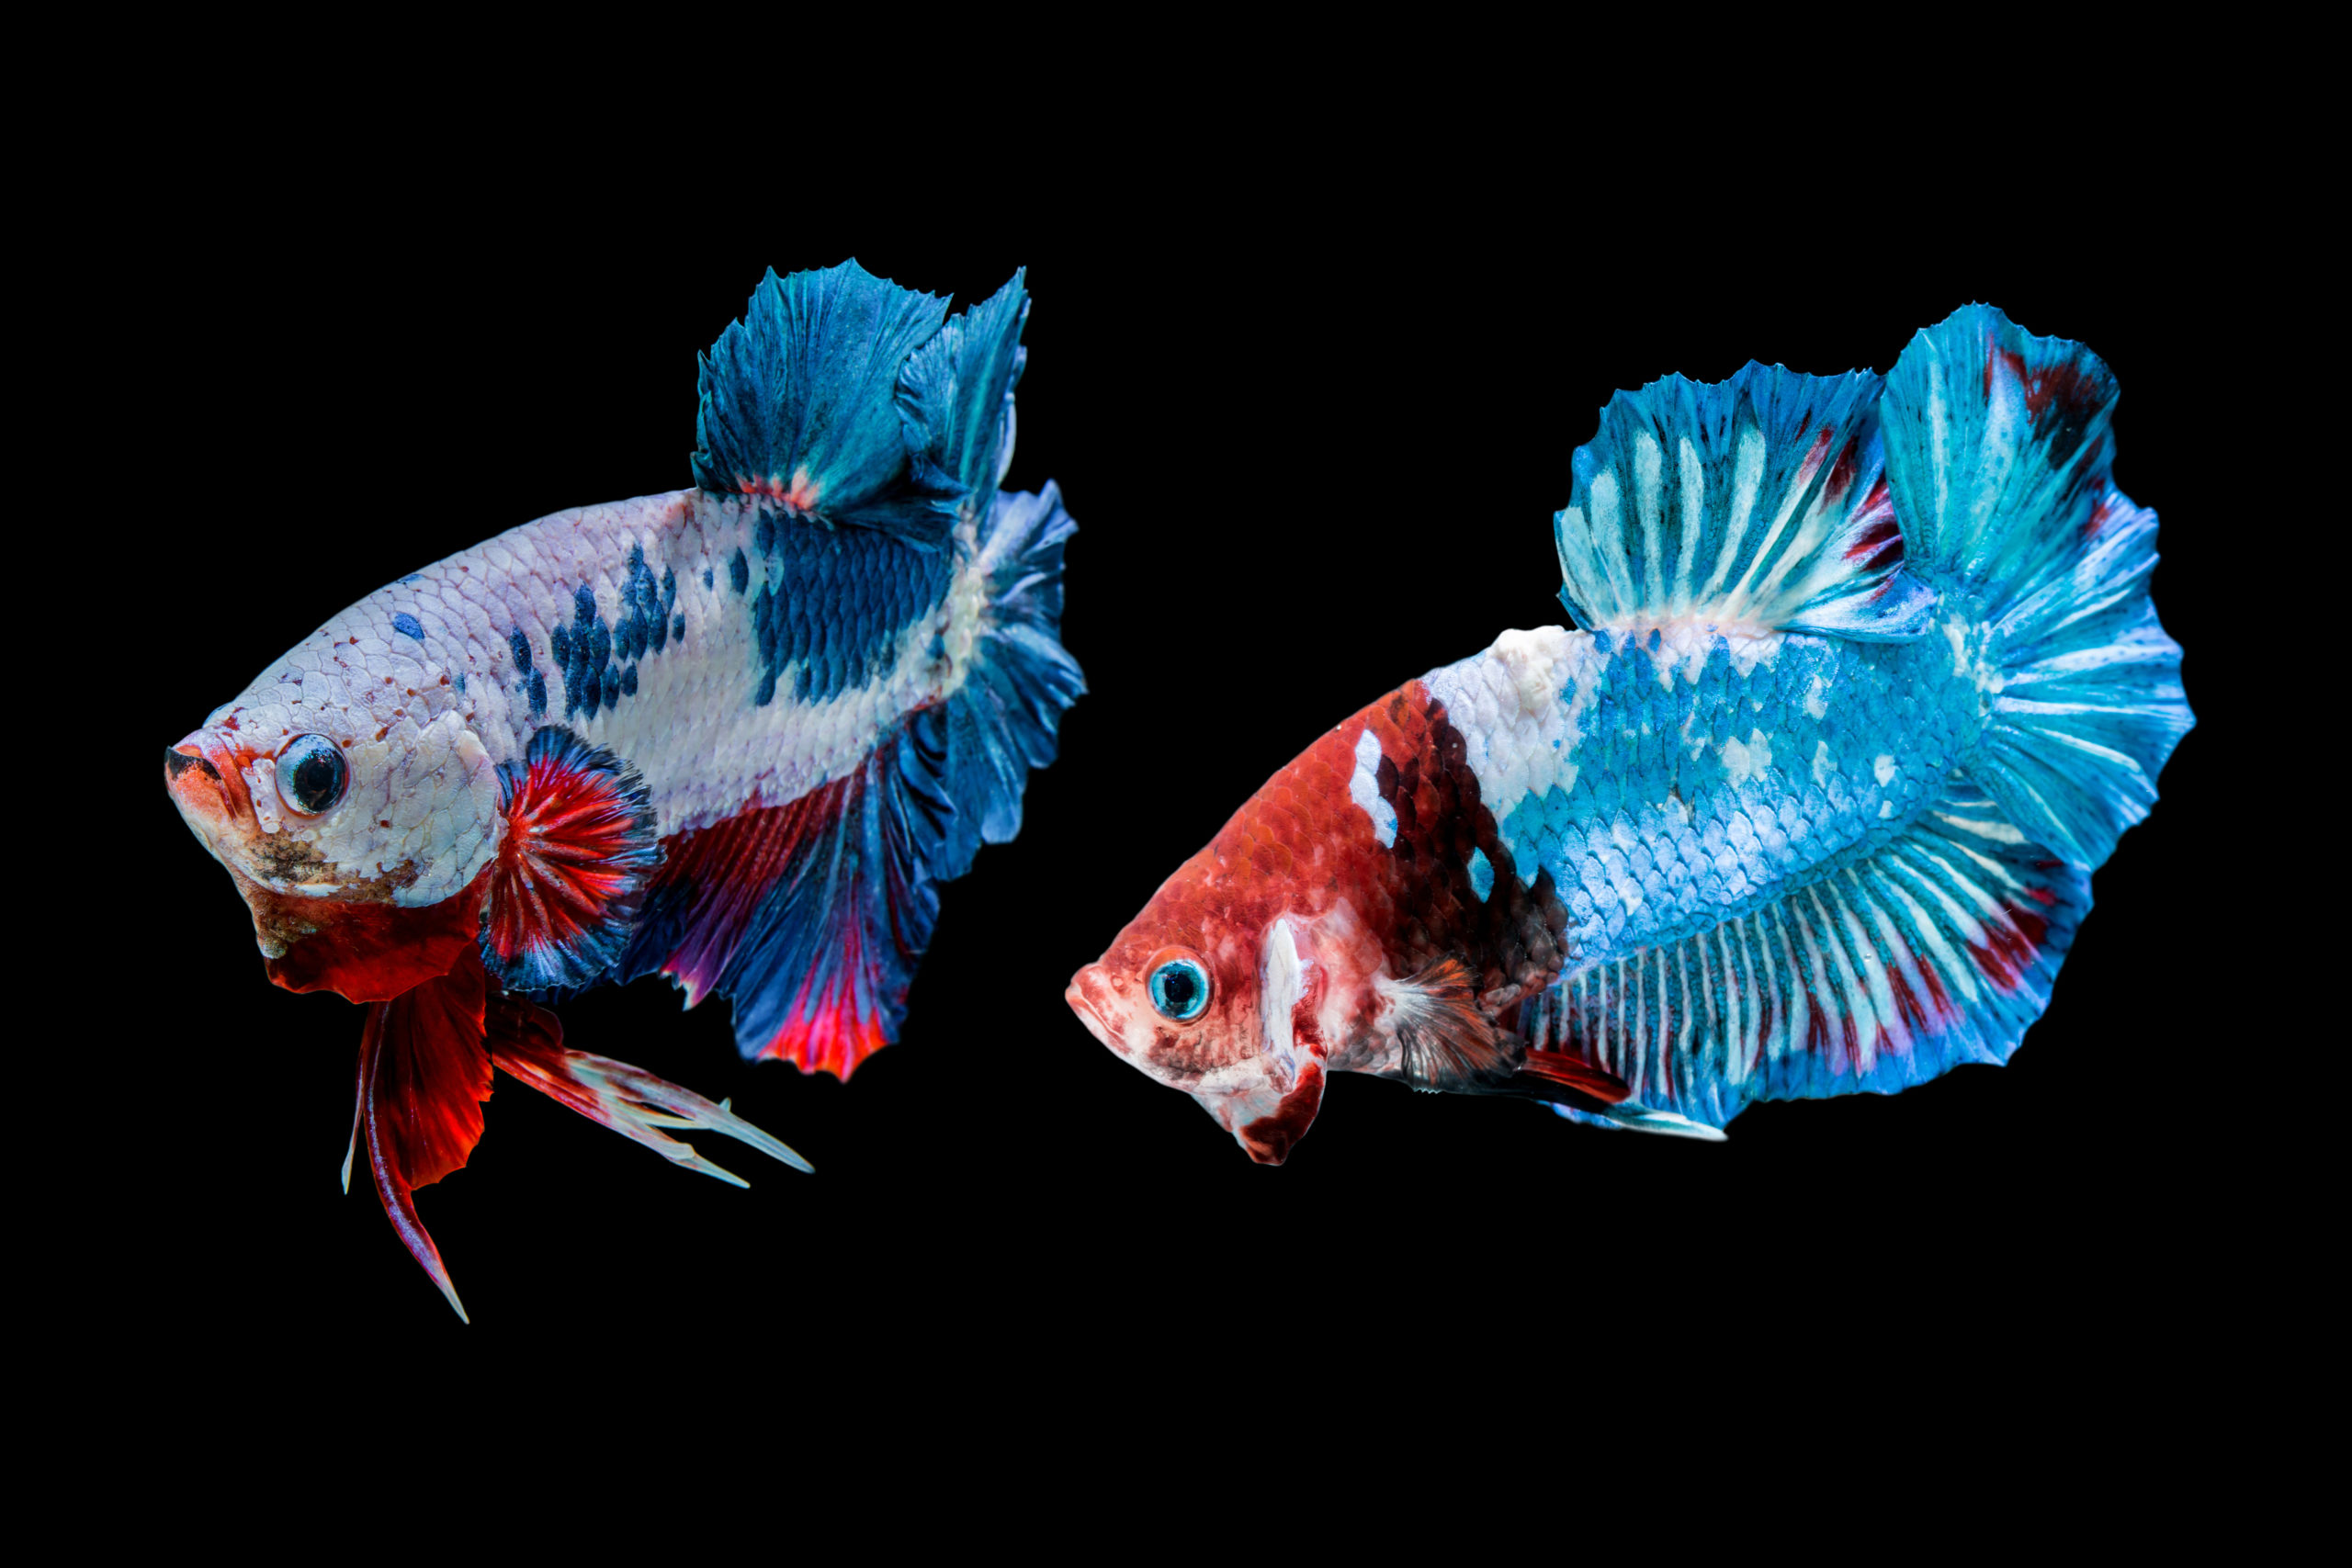 Two betta fish with similar colors, one looking back at the other.